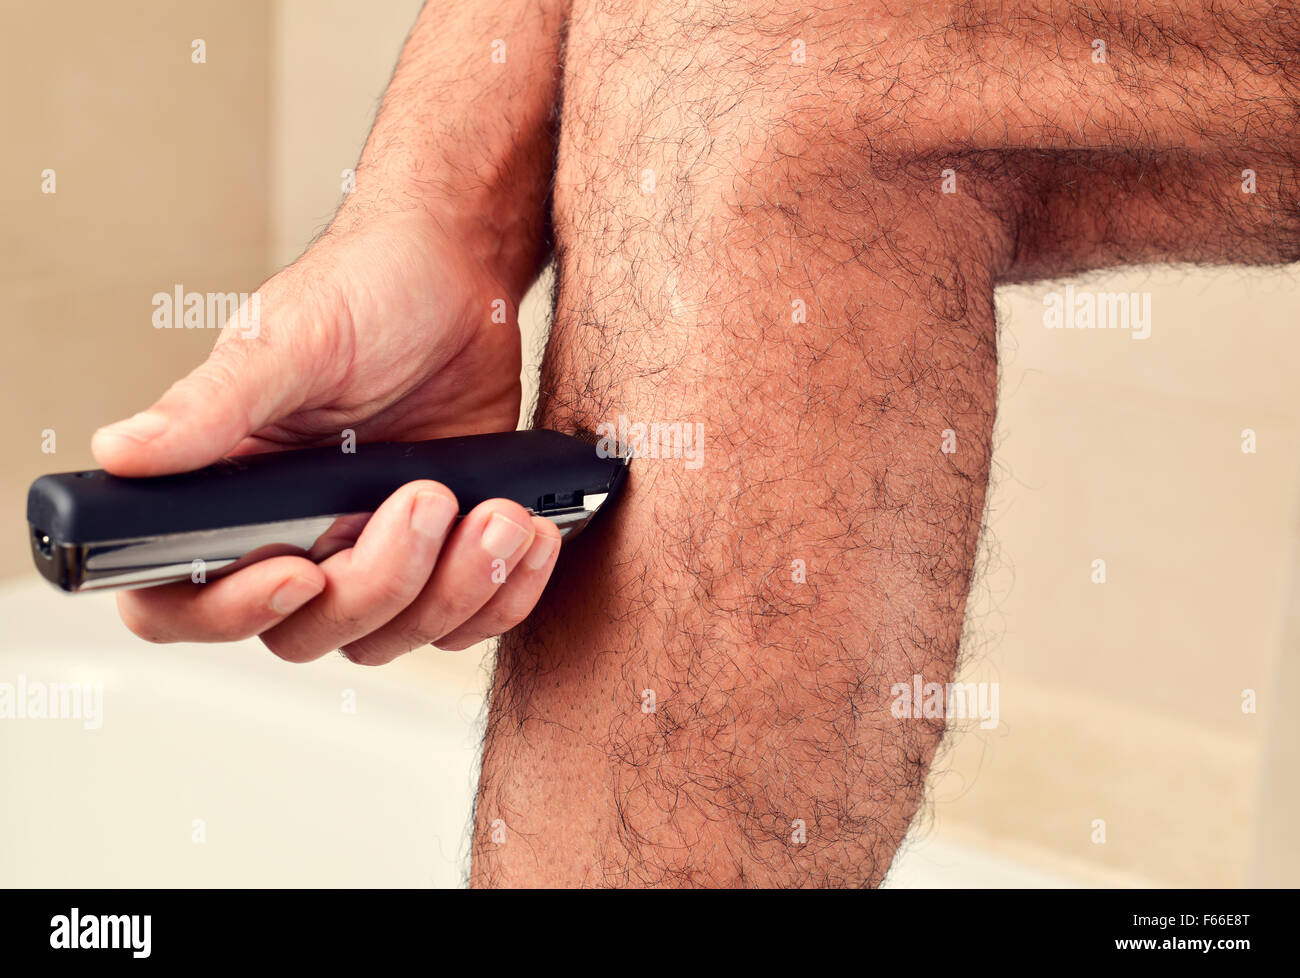 closeup of a young caucasian man trimming the hair of his legs with an electric trimmer Stock Photo